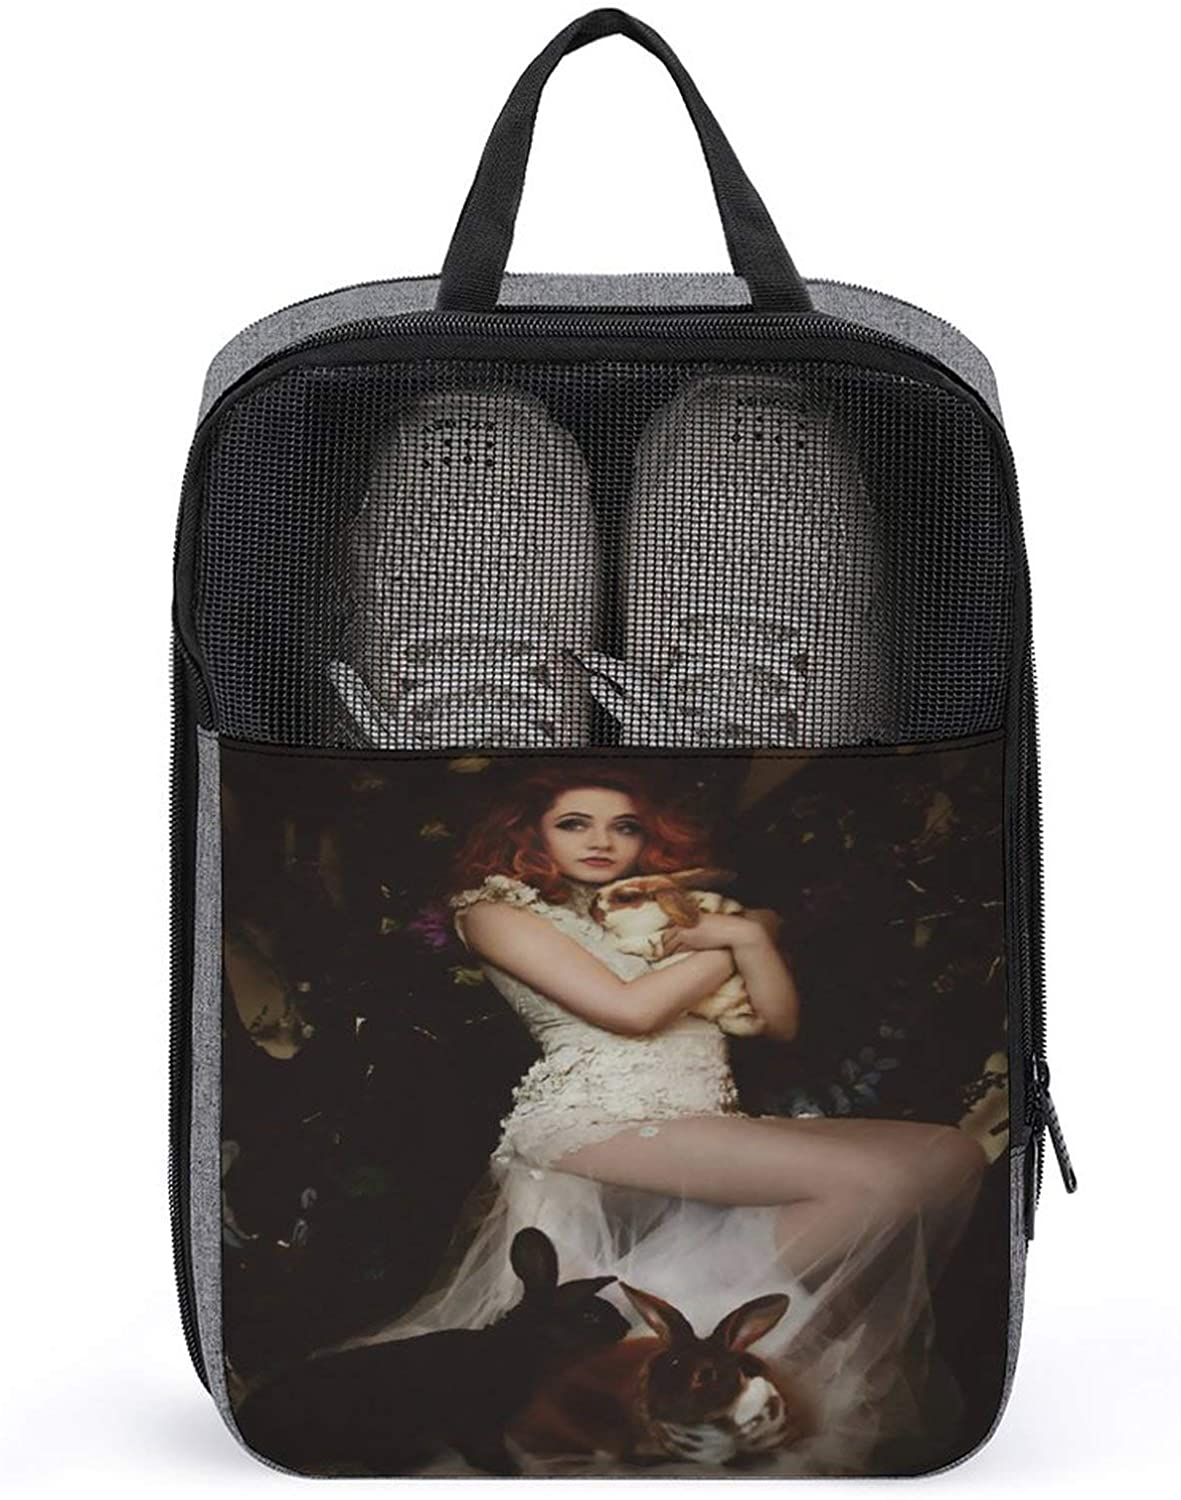 PLASVB JANET DEVLIN OUTDOOR TRAVEL SHOE BOX STORAGE BAG STRONG AND DURABLE SNOWFLAKE CLOTH ONE SIZE